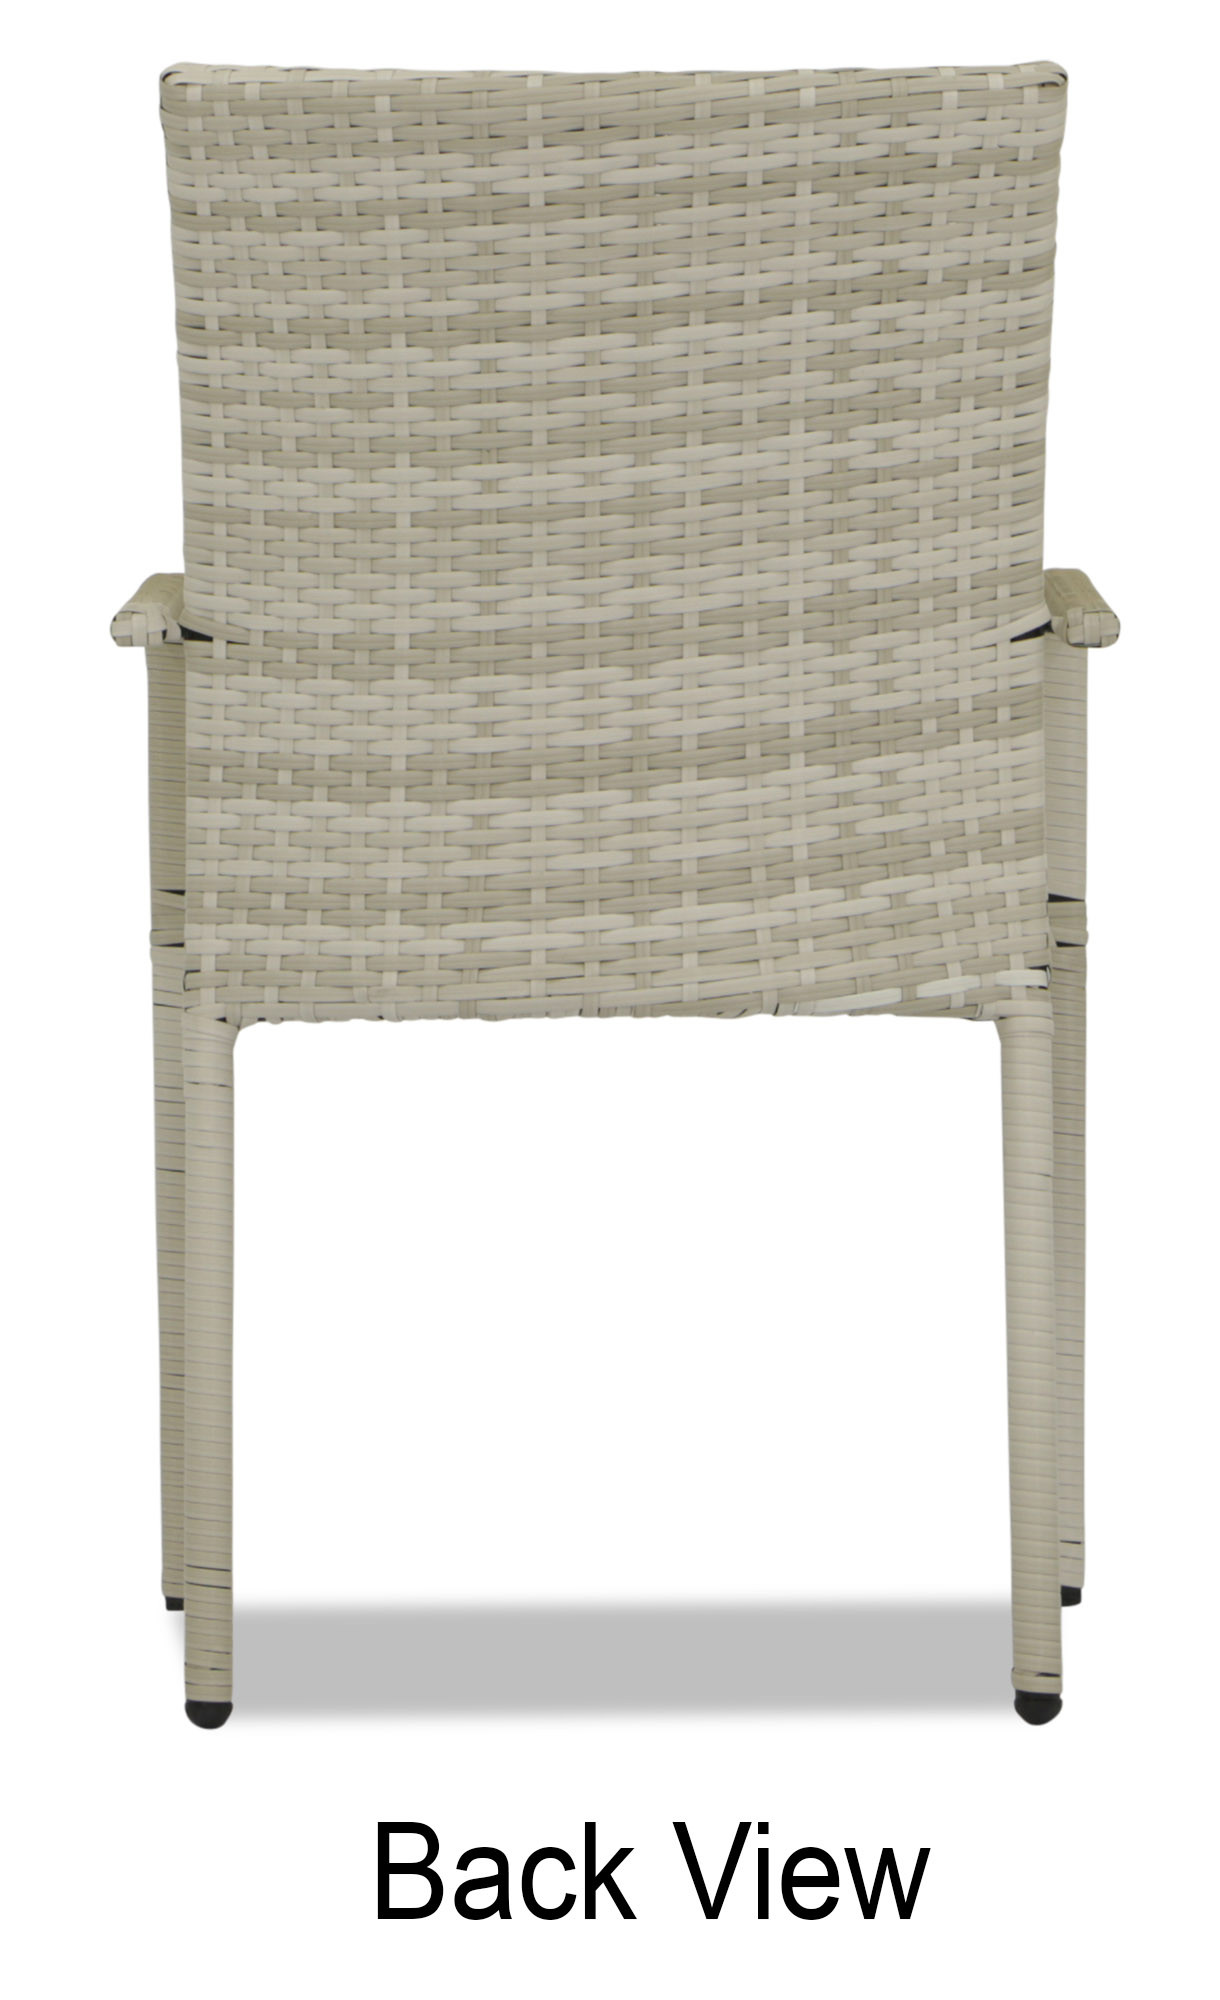 Wicker Outdoor Dining Chairs Wakiky Outdoor Dining Chair Cream